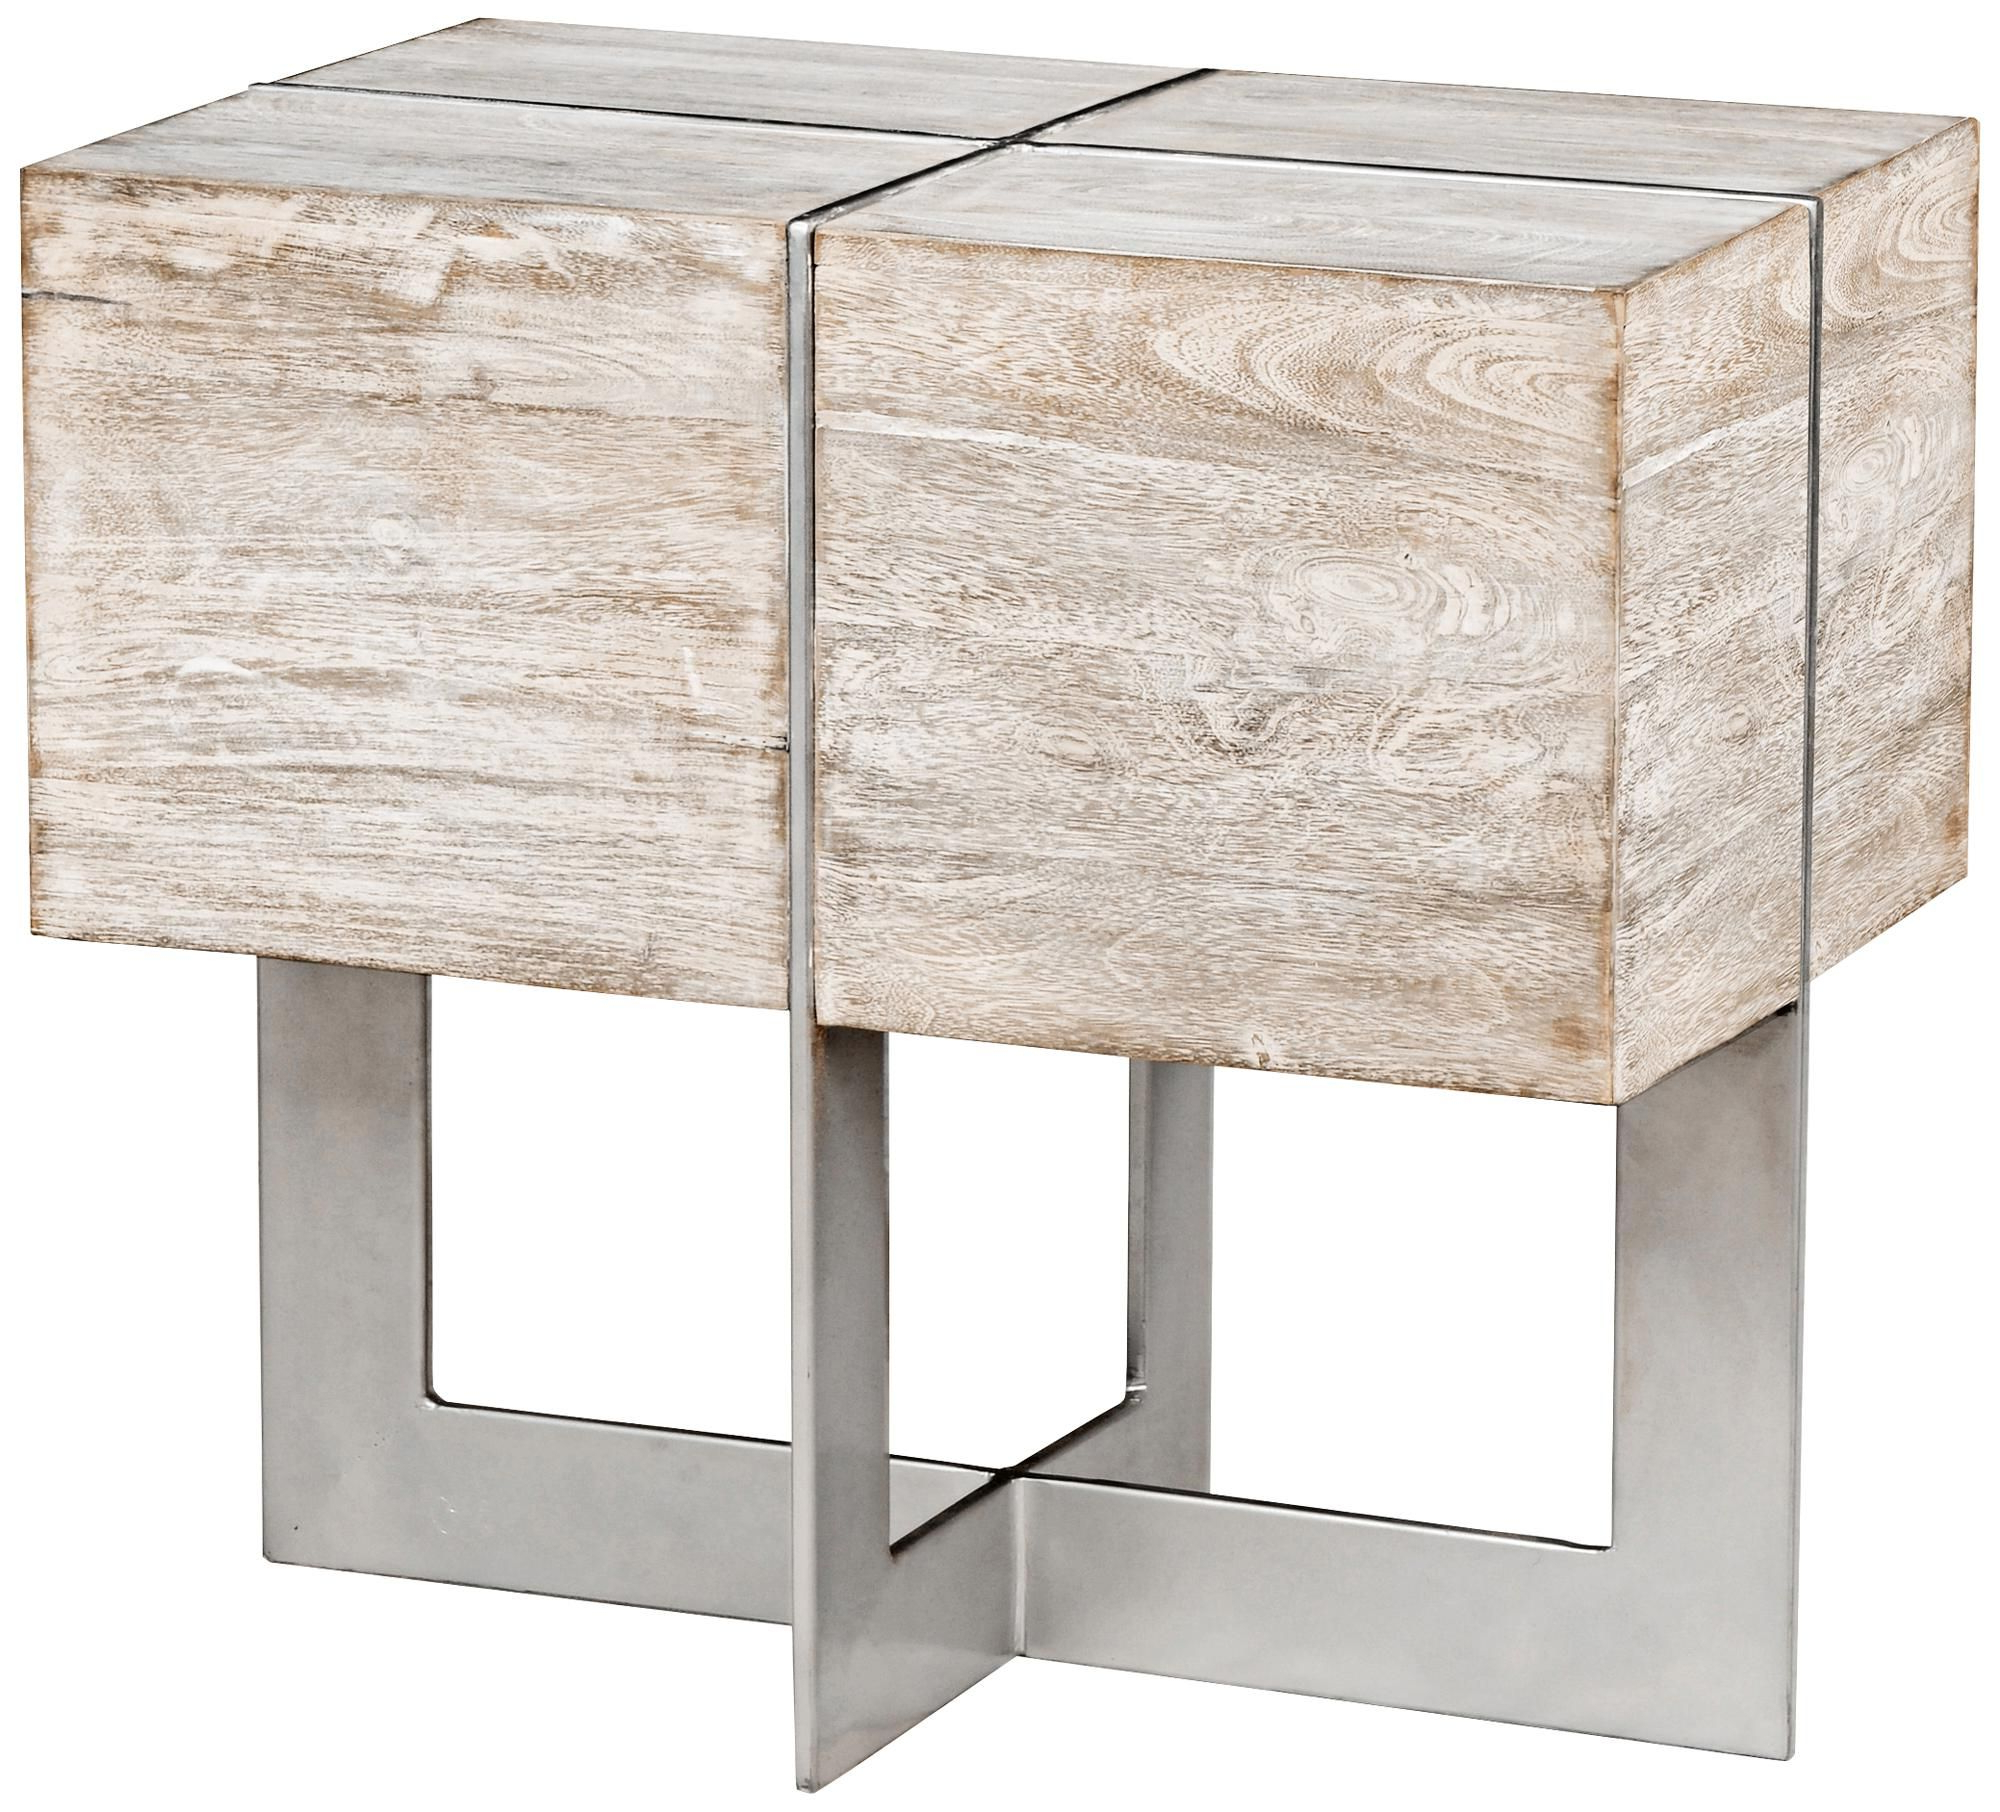 Desmond White Wash Solid Mango Wood Block End Table | Home Accents Within Parsons Walnut Top & Dark Steel Base 48x16 Console Tables (View 12 of 20)